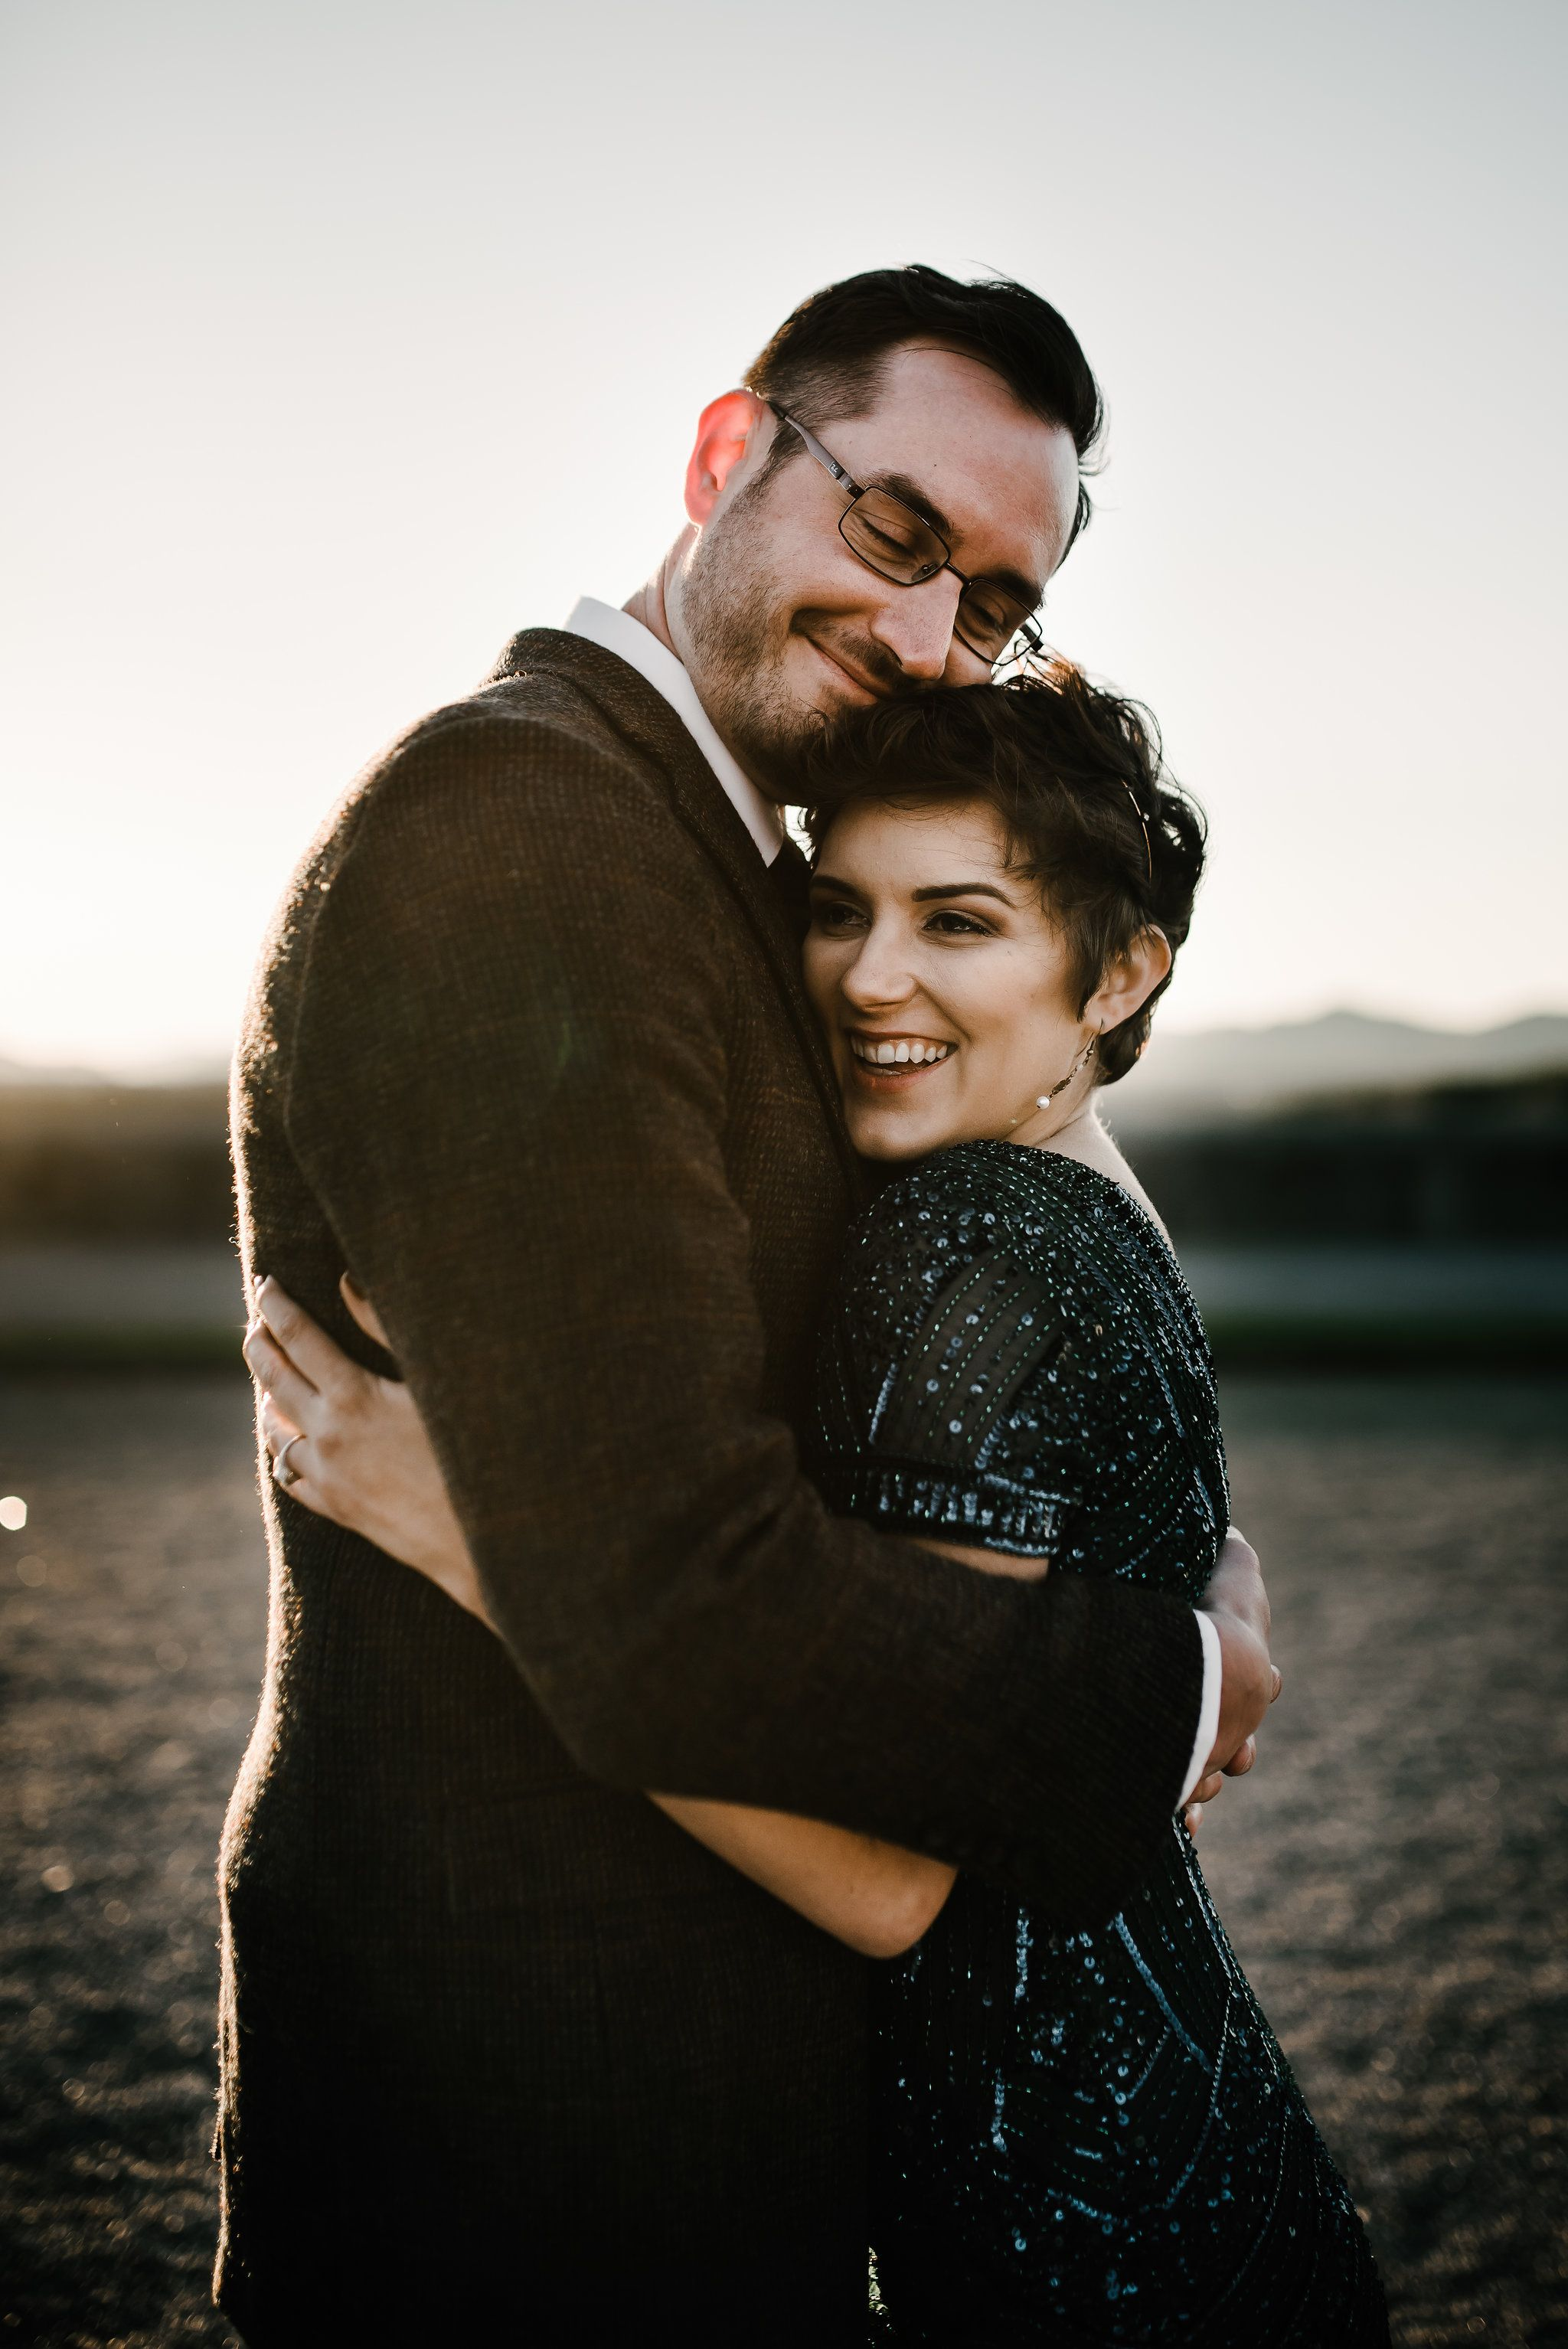 matchmaking required for marriage